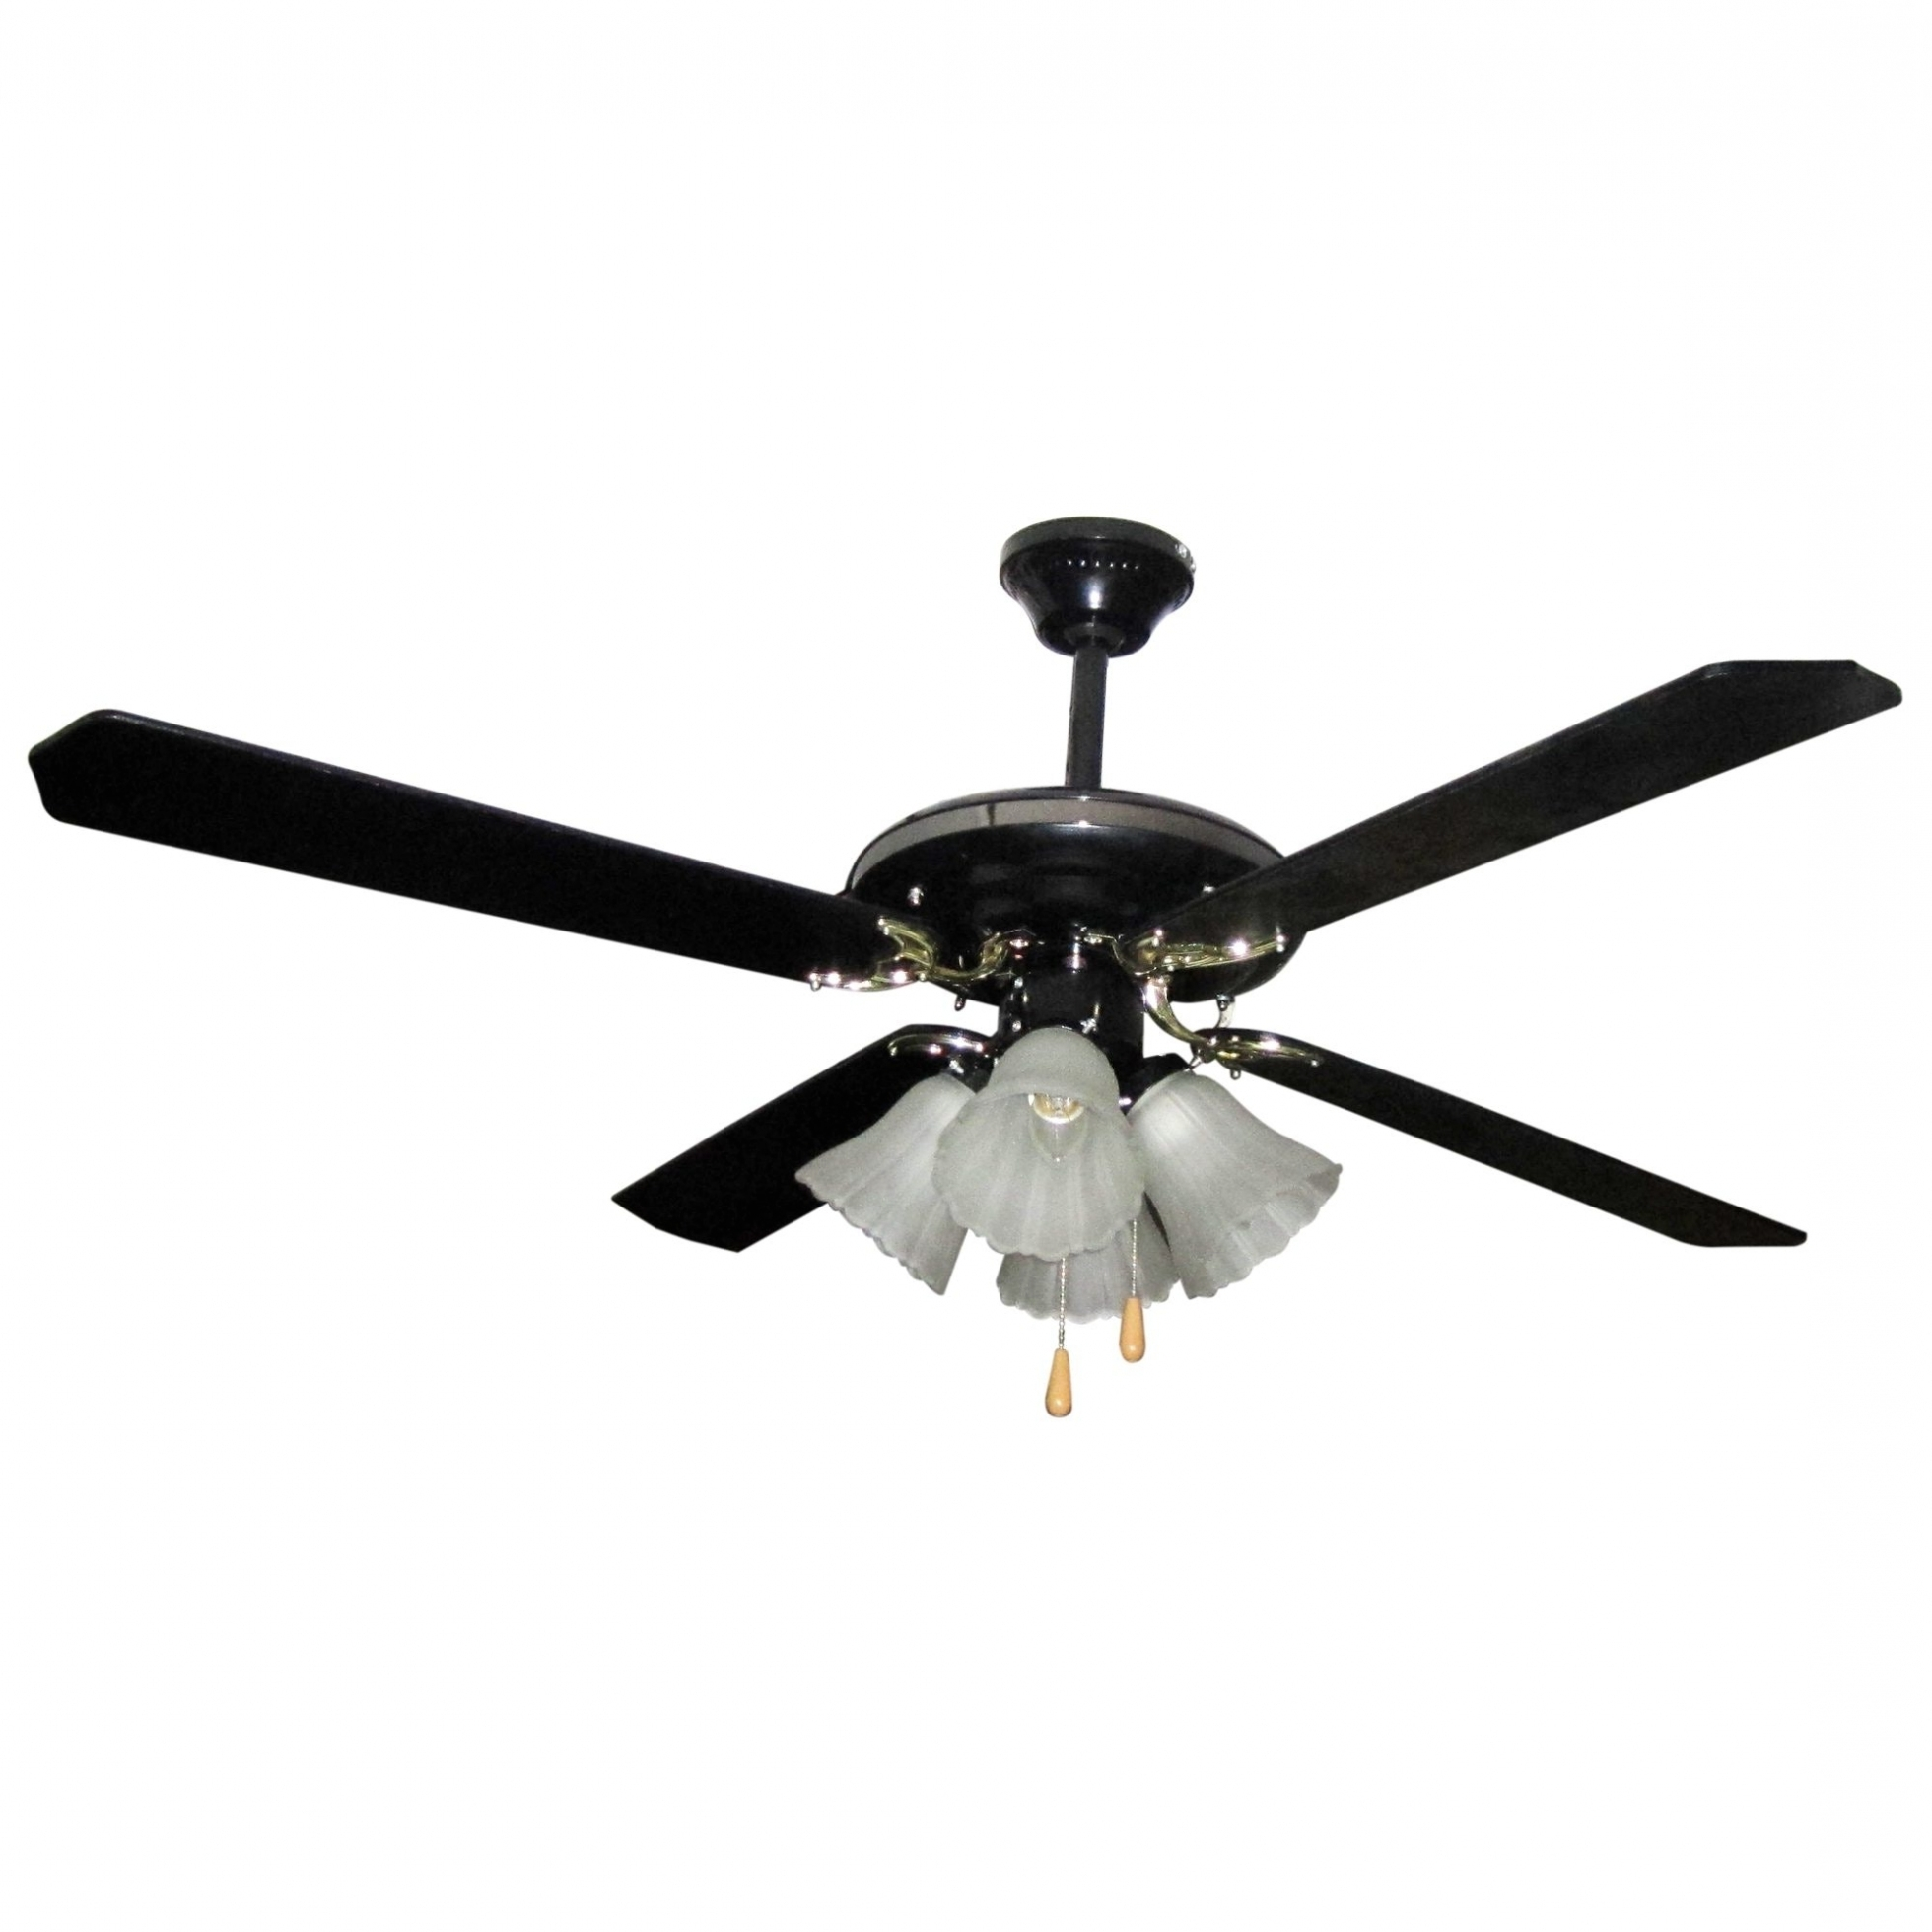 Outdoor Ceiling Fans At Menards For Widely Used Fans: Ceiling Fan ~ Menards Outdoor Ceiling Fans Designsal Design (Gallery 1 of 20)